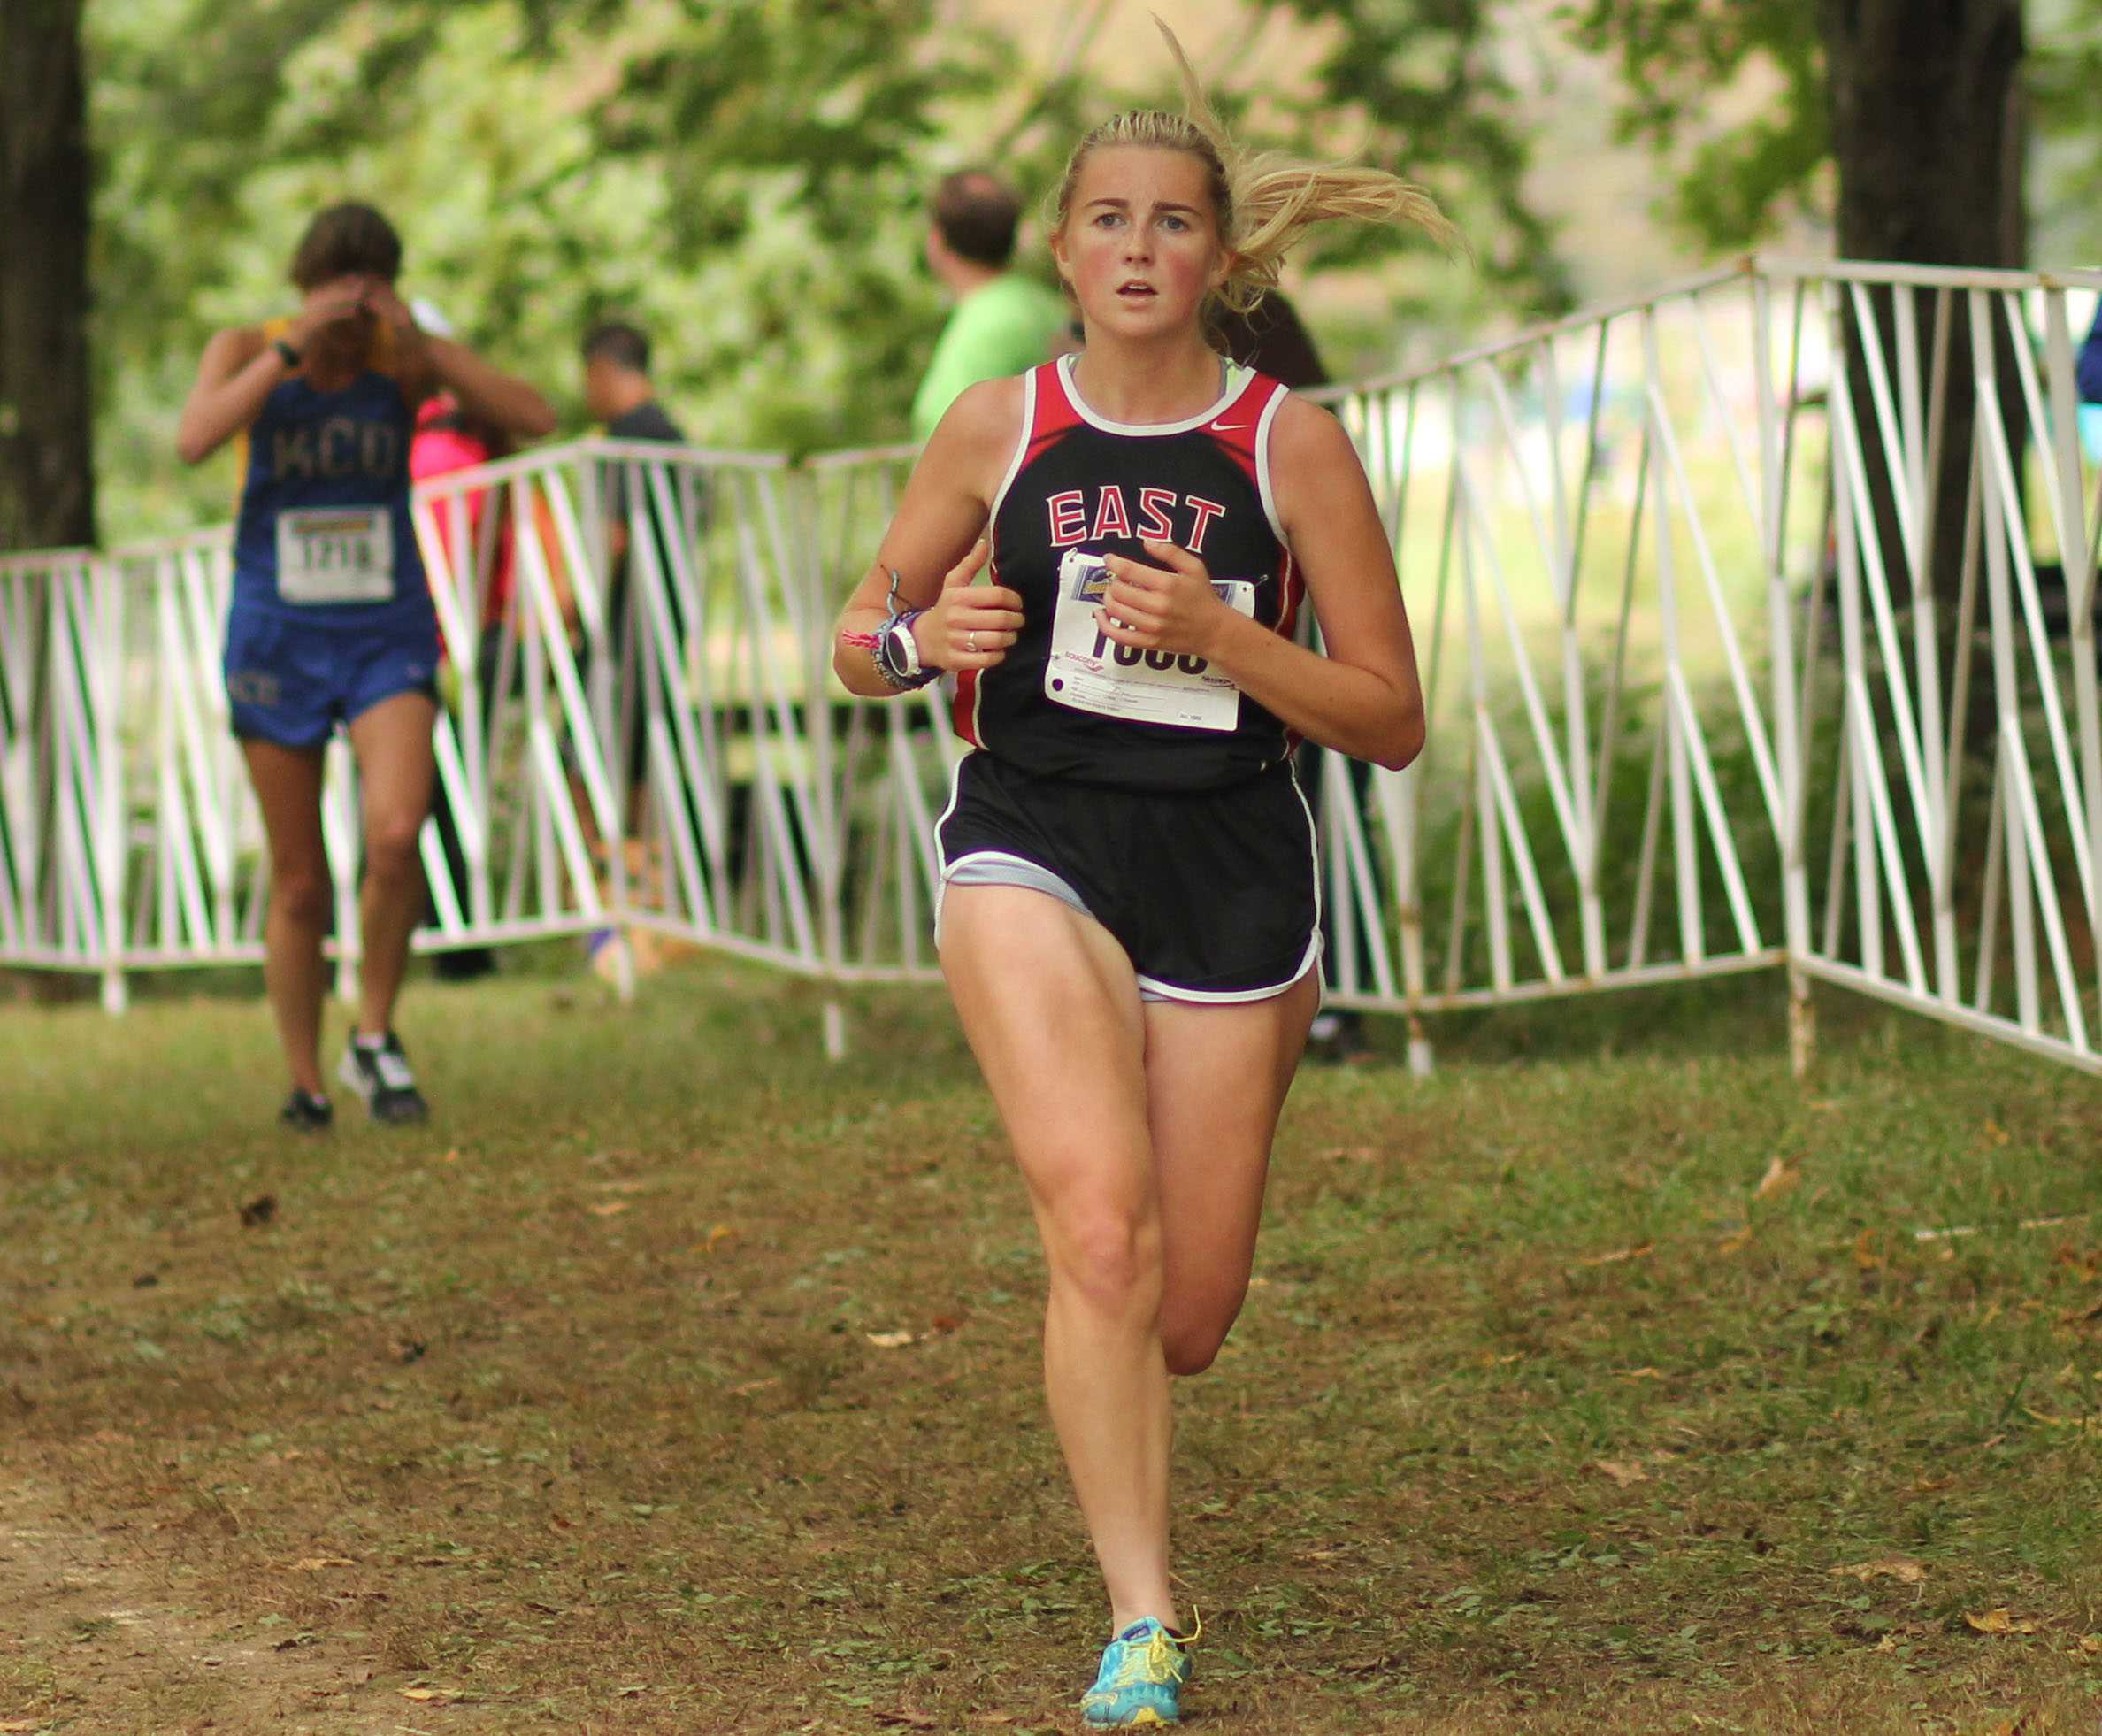 Meredith Thornsberry has been running for Bullitt East for most of her high school career. She is continuing to improve more and more each year.